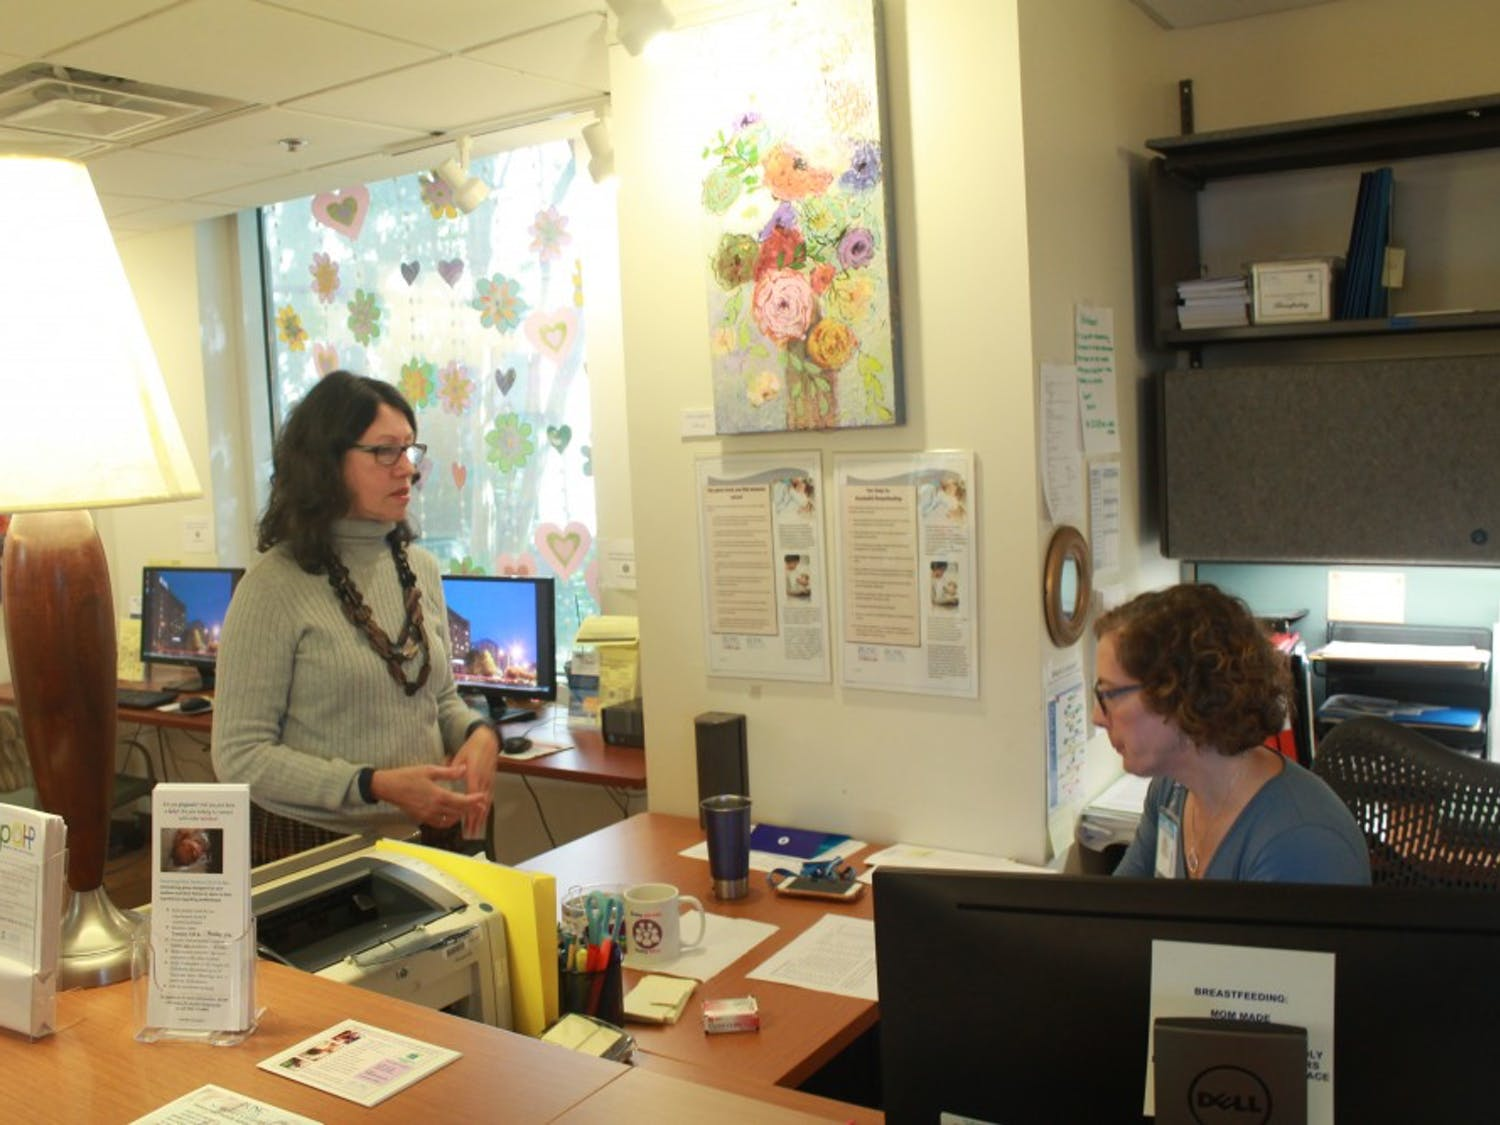 Health Education Director of the Women's Health Information Center Mary Quezada and Health Education Coordinator Sue Duronio discuss issues within the UNC Women's Center on Monday, Oct. 22.